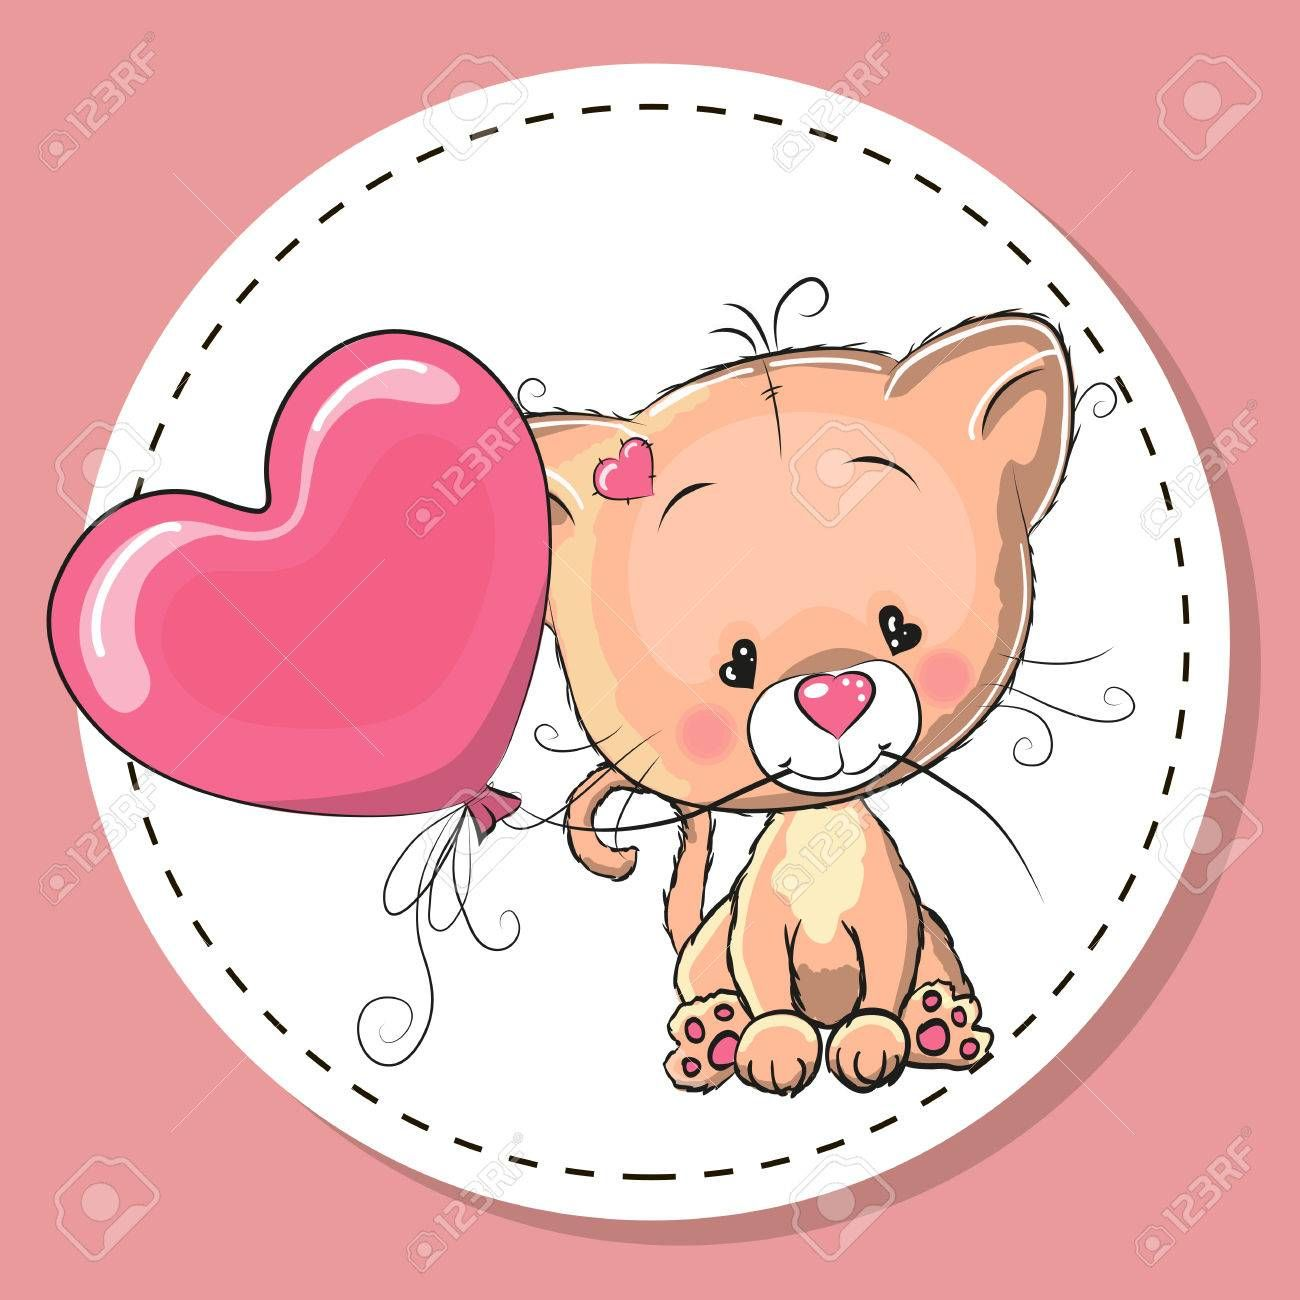 Greeting Card Cute Kitten With Pink Balloon Kittens Cutest Cute Drawings Pink Balloons